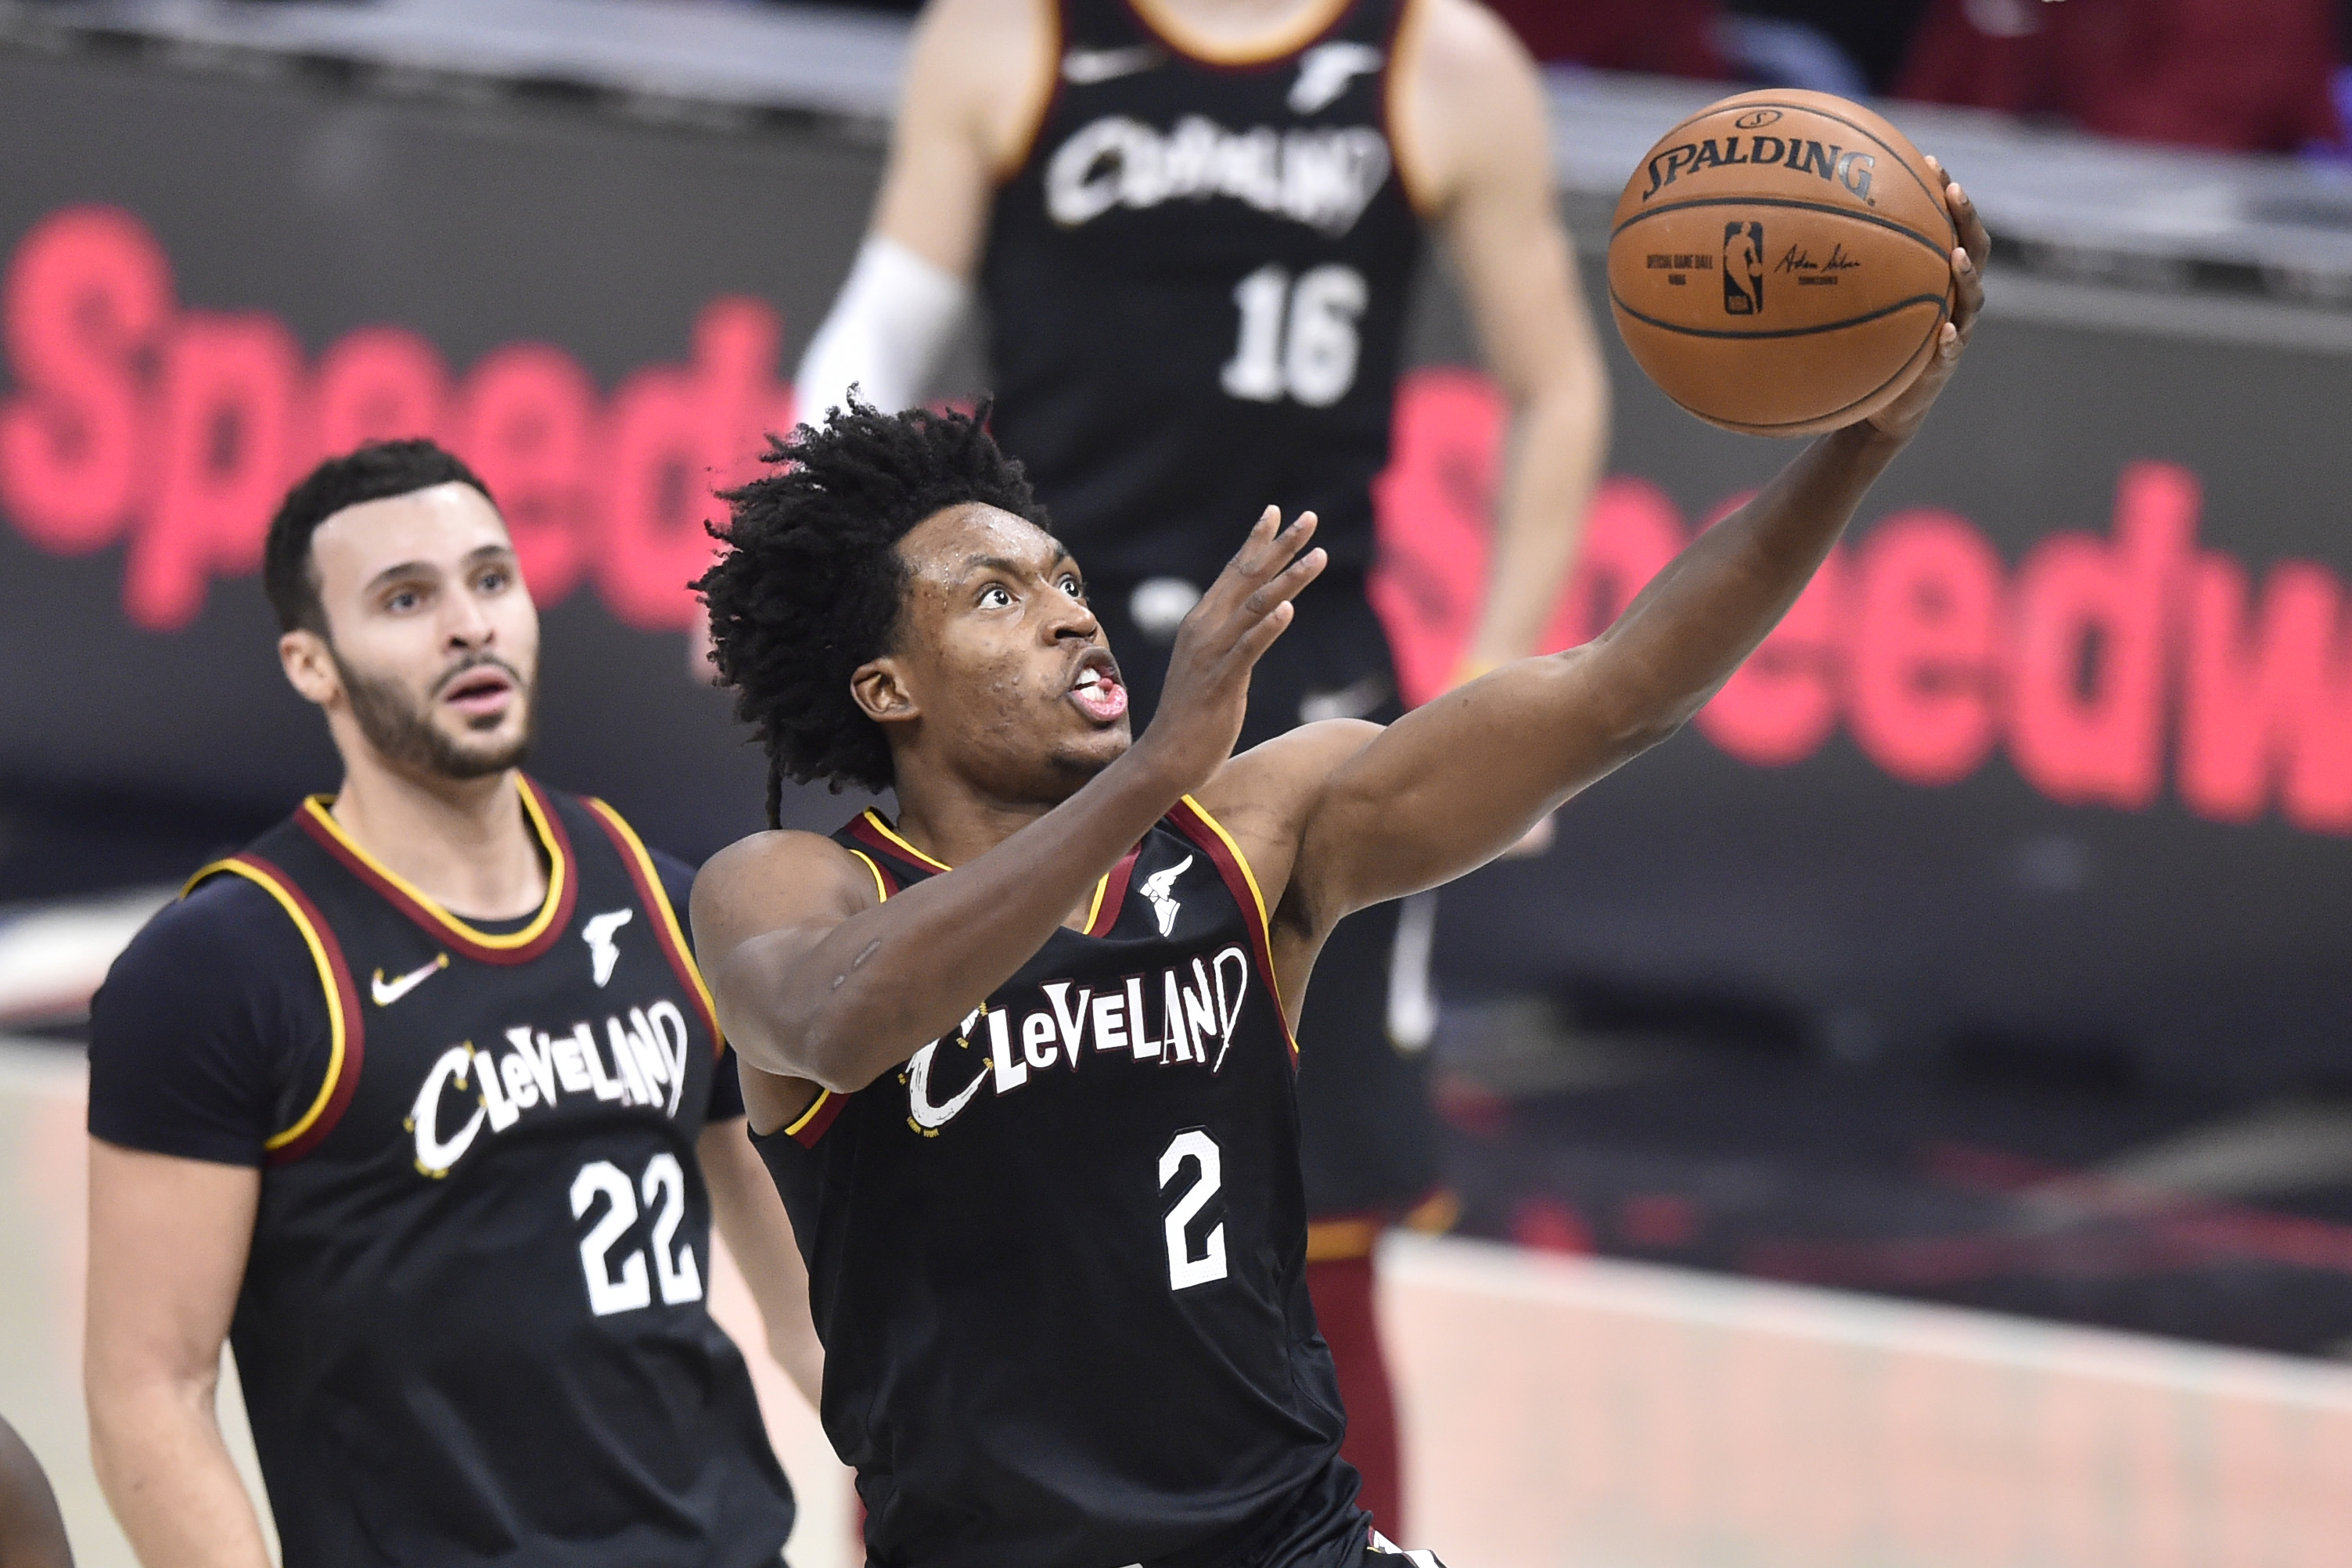 Jan 20, 2021; Cleveland, Ohio, USA; Cleveland Cavaliers guard Collin Sexton (2) drives to the basket in the third quarter against the Brooklyn Nets at Rocket Mortgage FieldHouse. Mandatory Credit: David Richard-USA TODAY Sports